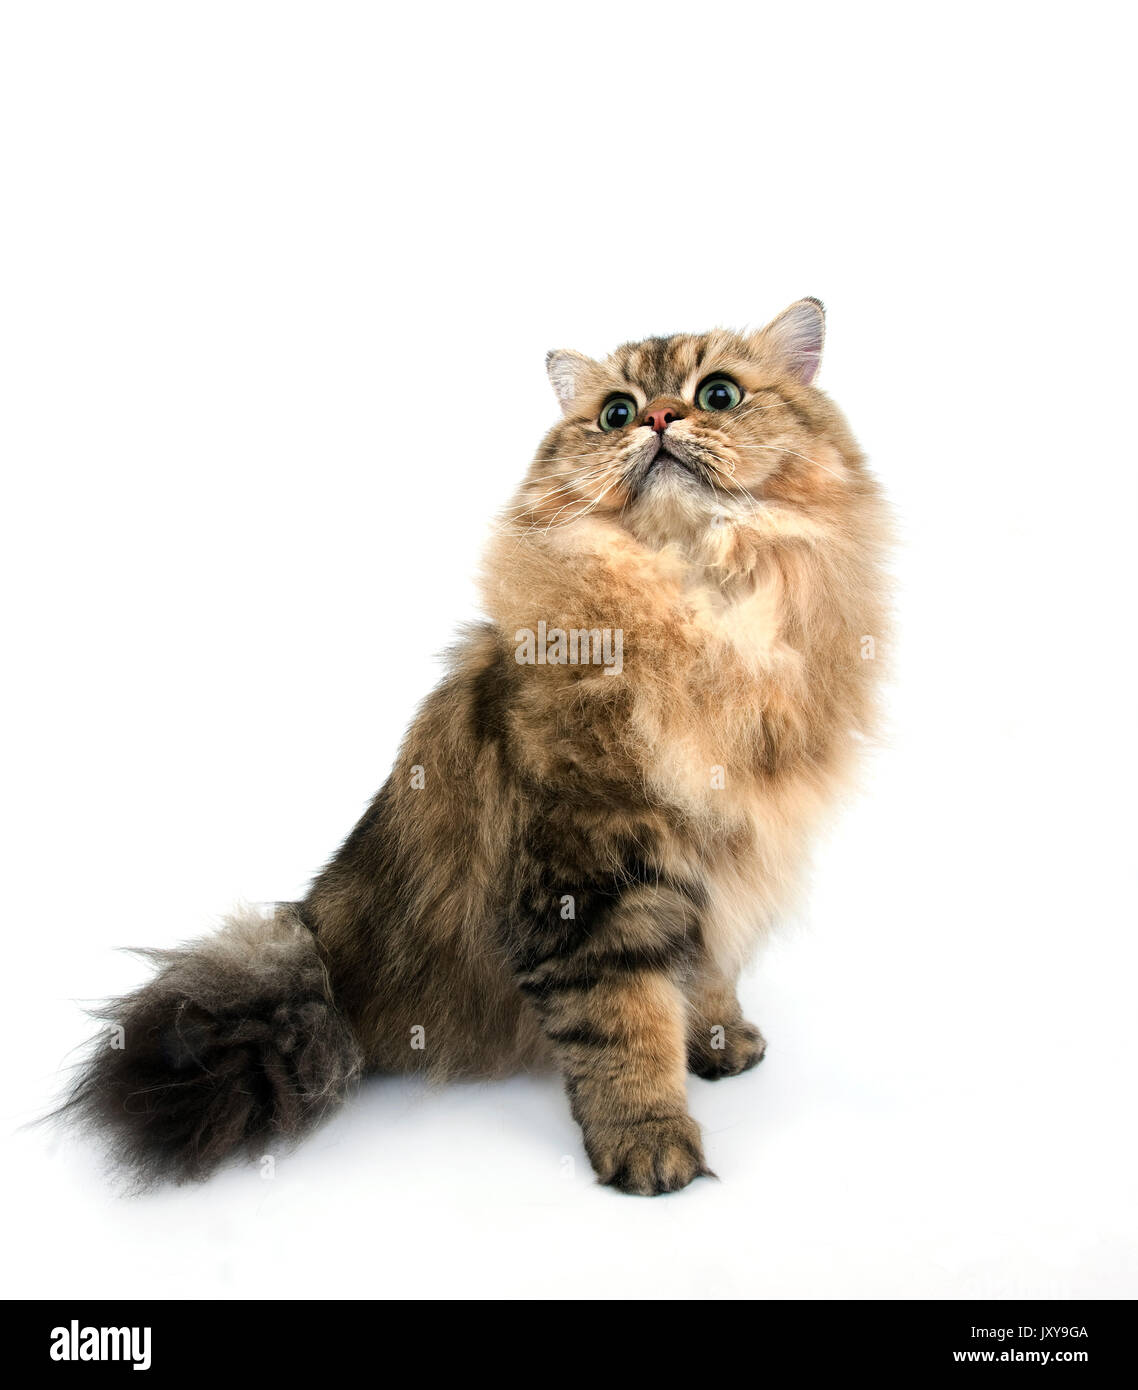 GOLDEN PERSIAN CAT ADULT AGAINST WHITE BACKGROUND Stock